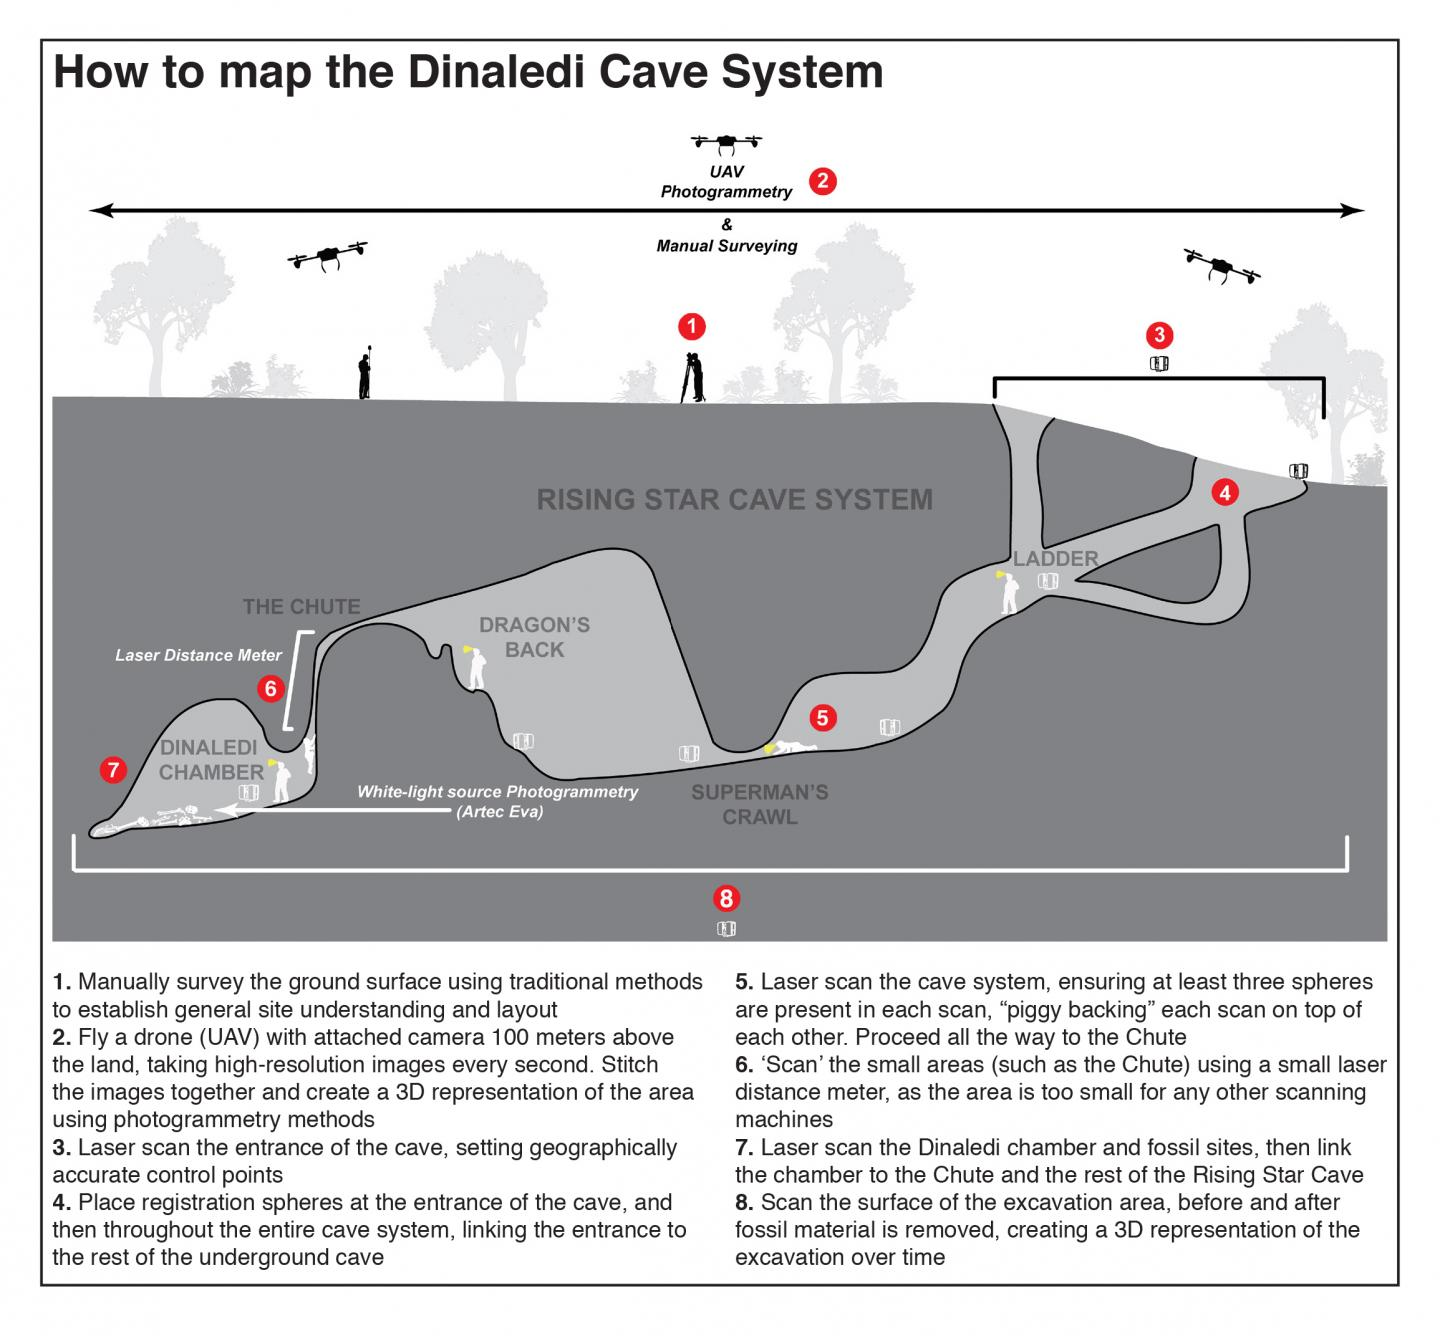 Mapping of the Dinaledi Cave System